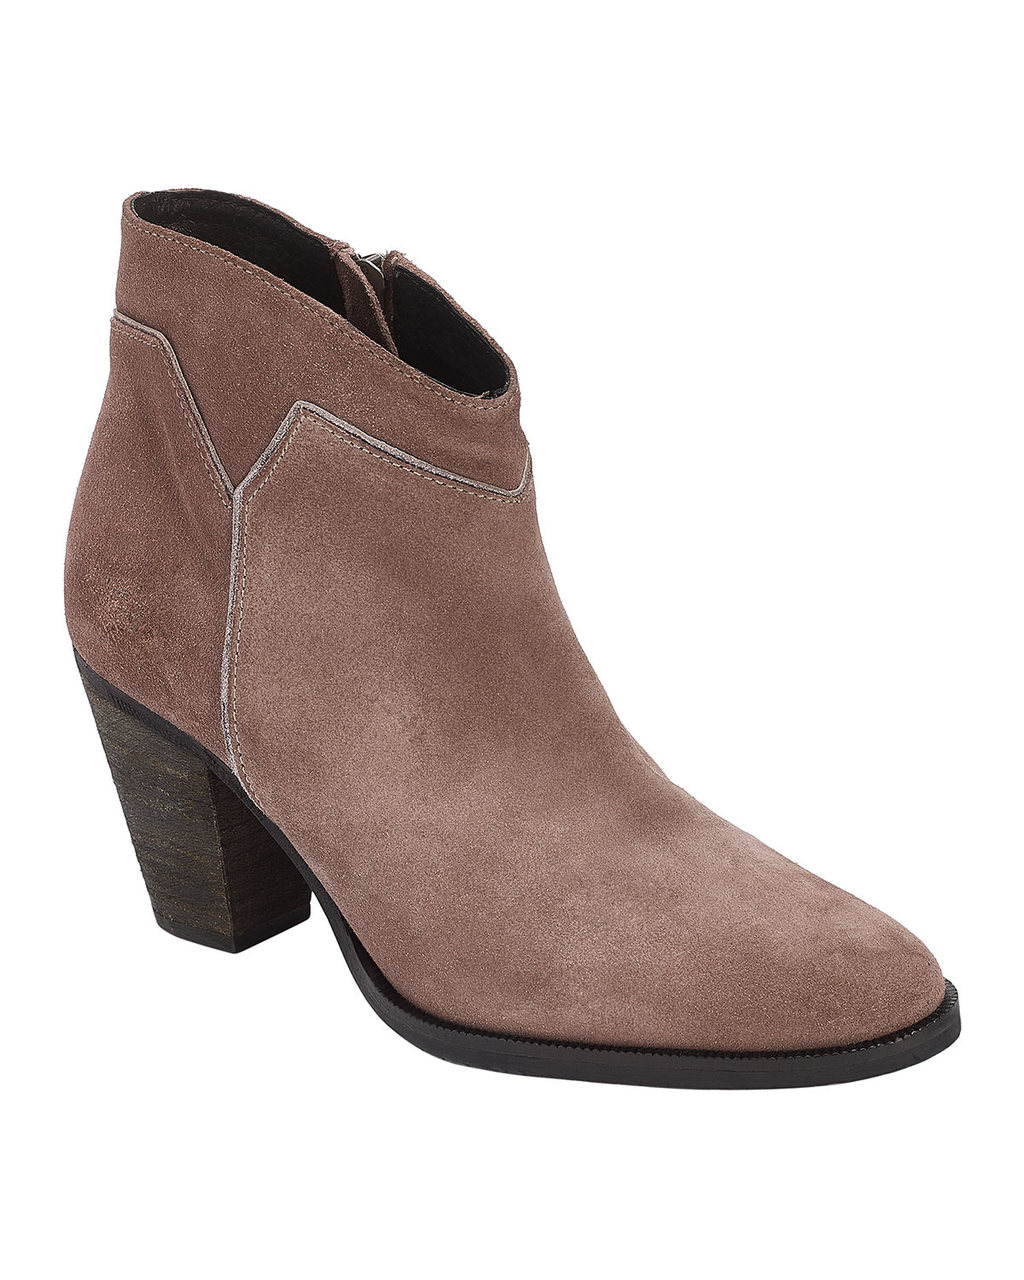 Amber Suede Boot - predominant colour: taupe; occasions: casual, creative work; material: suede; heel height: mid; heel: cone; toe: round toe; boot length: ankle boot; style: cowboy; finish: plain; pattern: plain; wardrobe: basic; season: a/w 2016